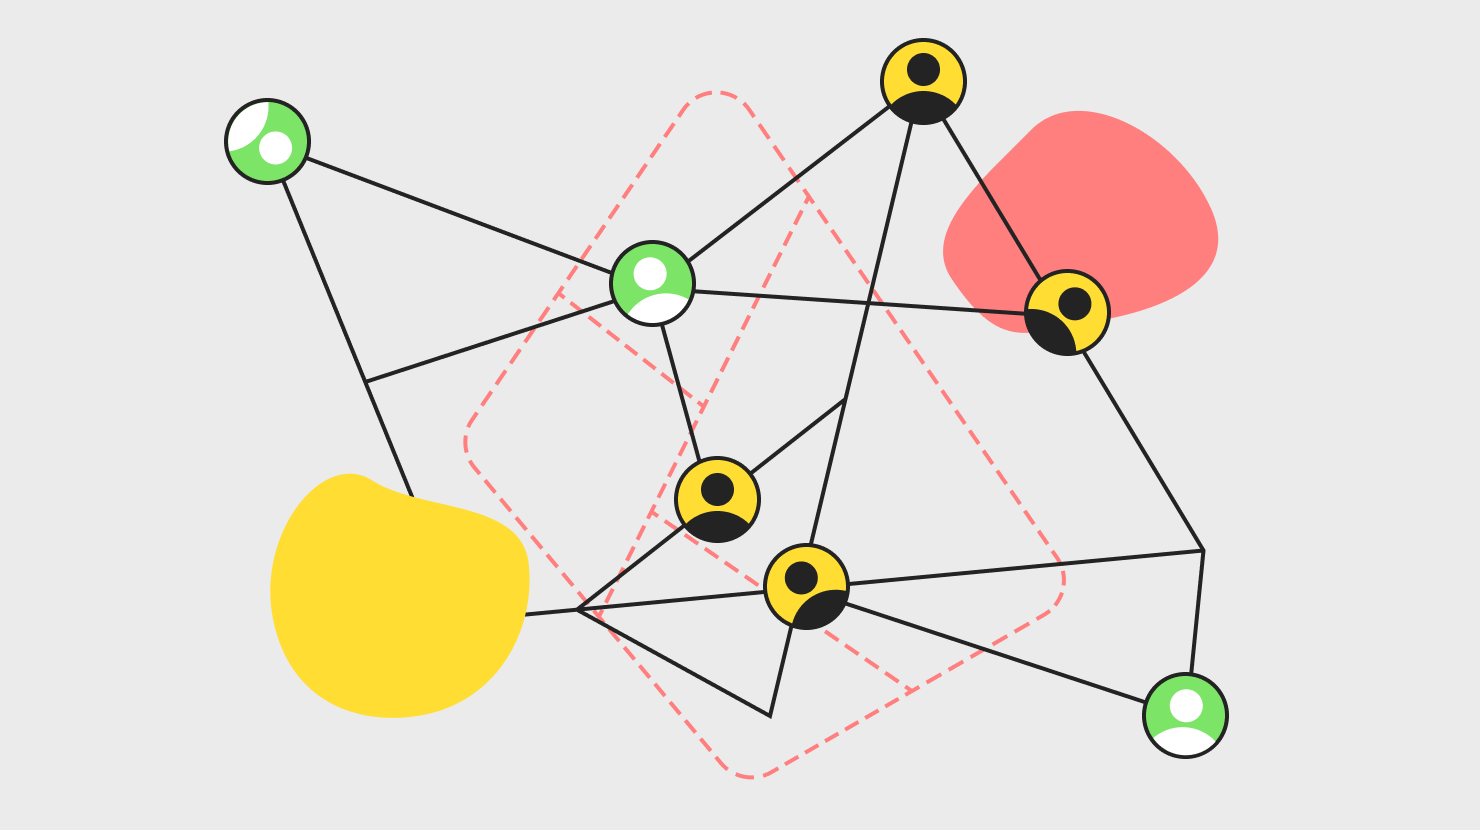 7 steps to build culture and team connections remotely